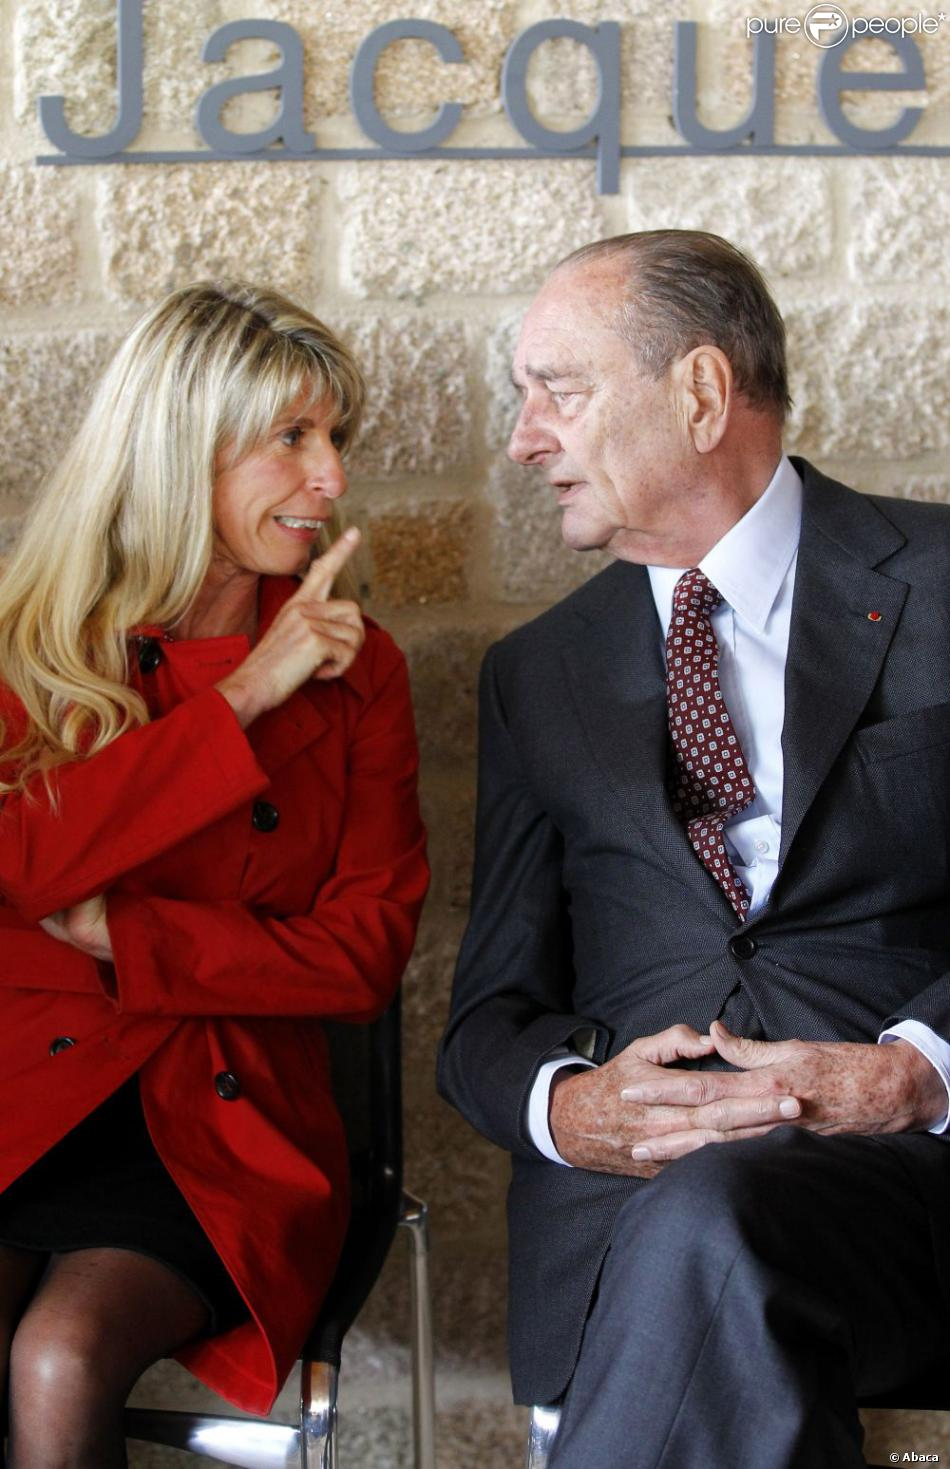 http://static1.purepeople.com/articles/1/82/30/1/@/644588-jacques-chirac-et-sophie-dessus-a-950x0-1.jpg